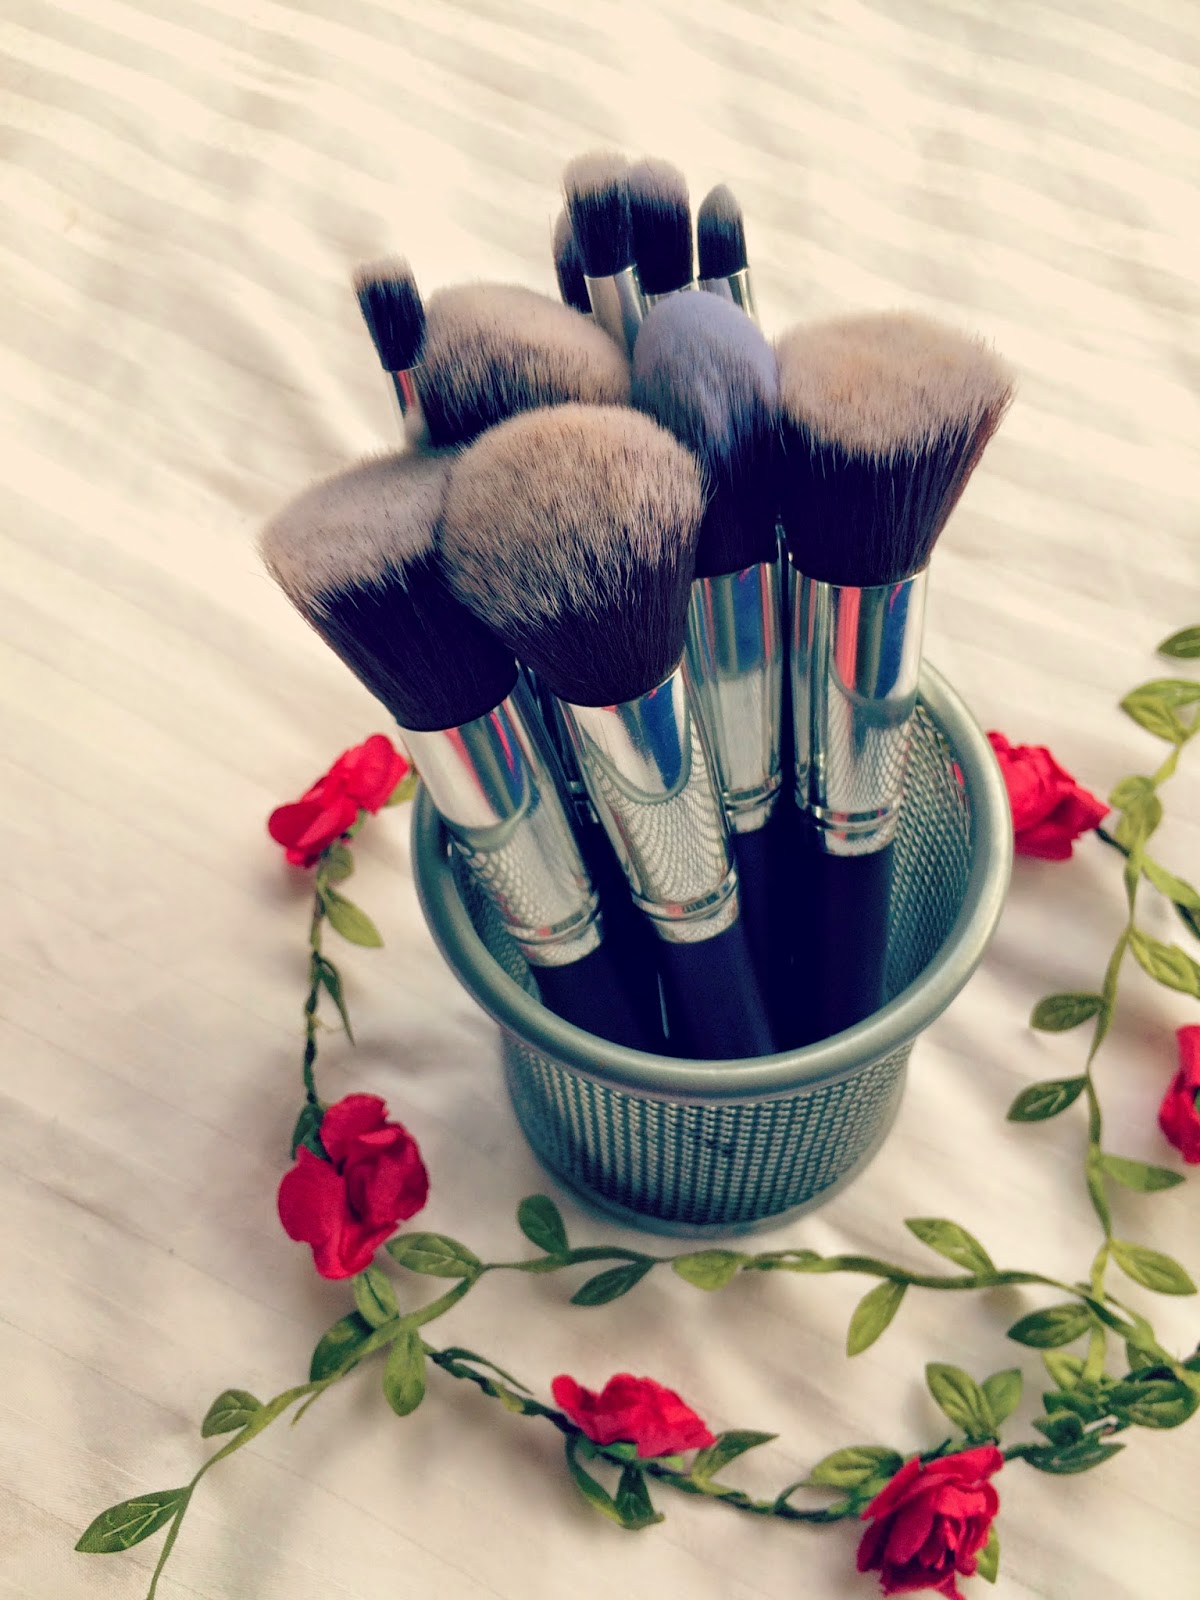 So first impressions when I got them were pretty good; I liked the simple sleek design and was amazed by how fluffy and soft all the brushes were.